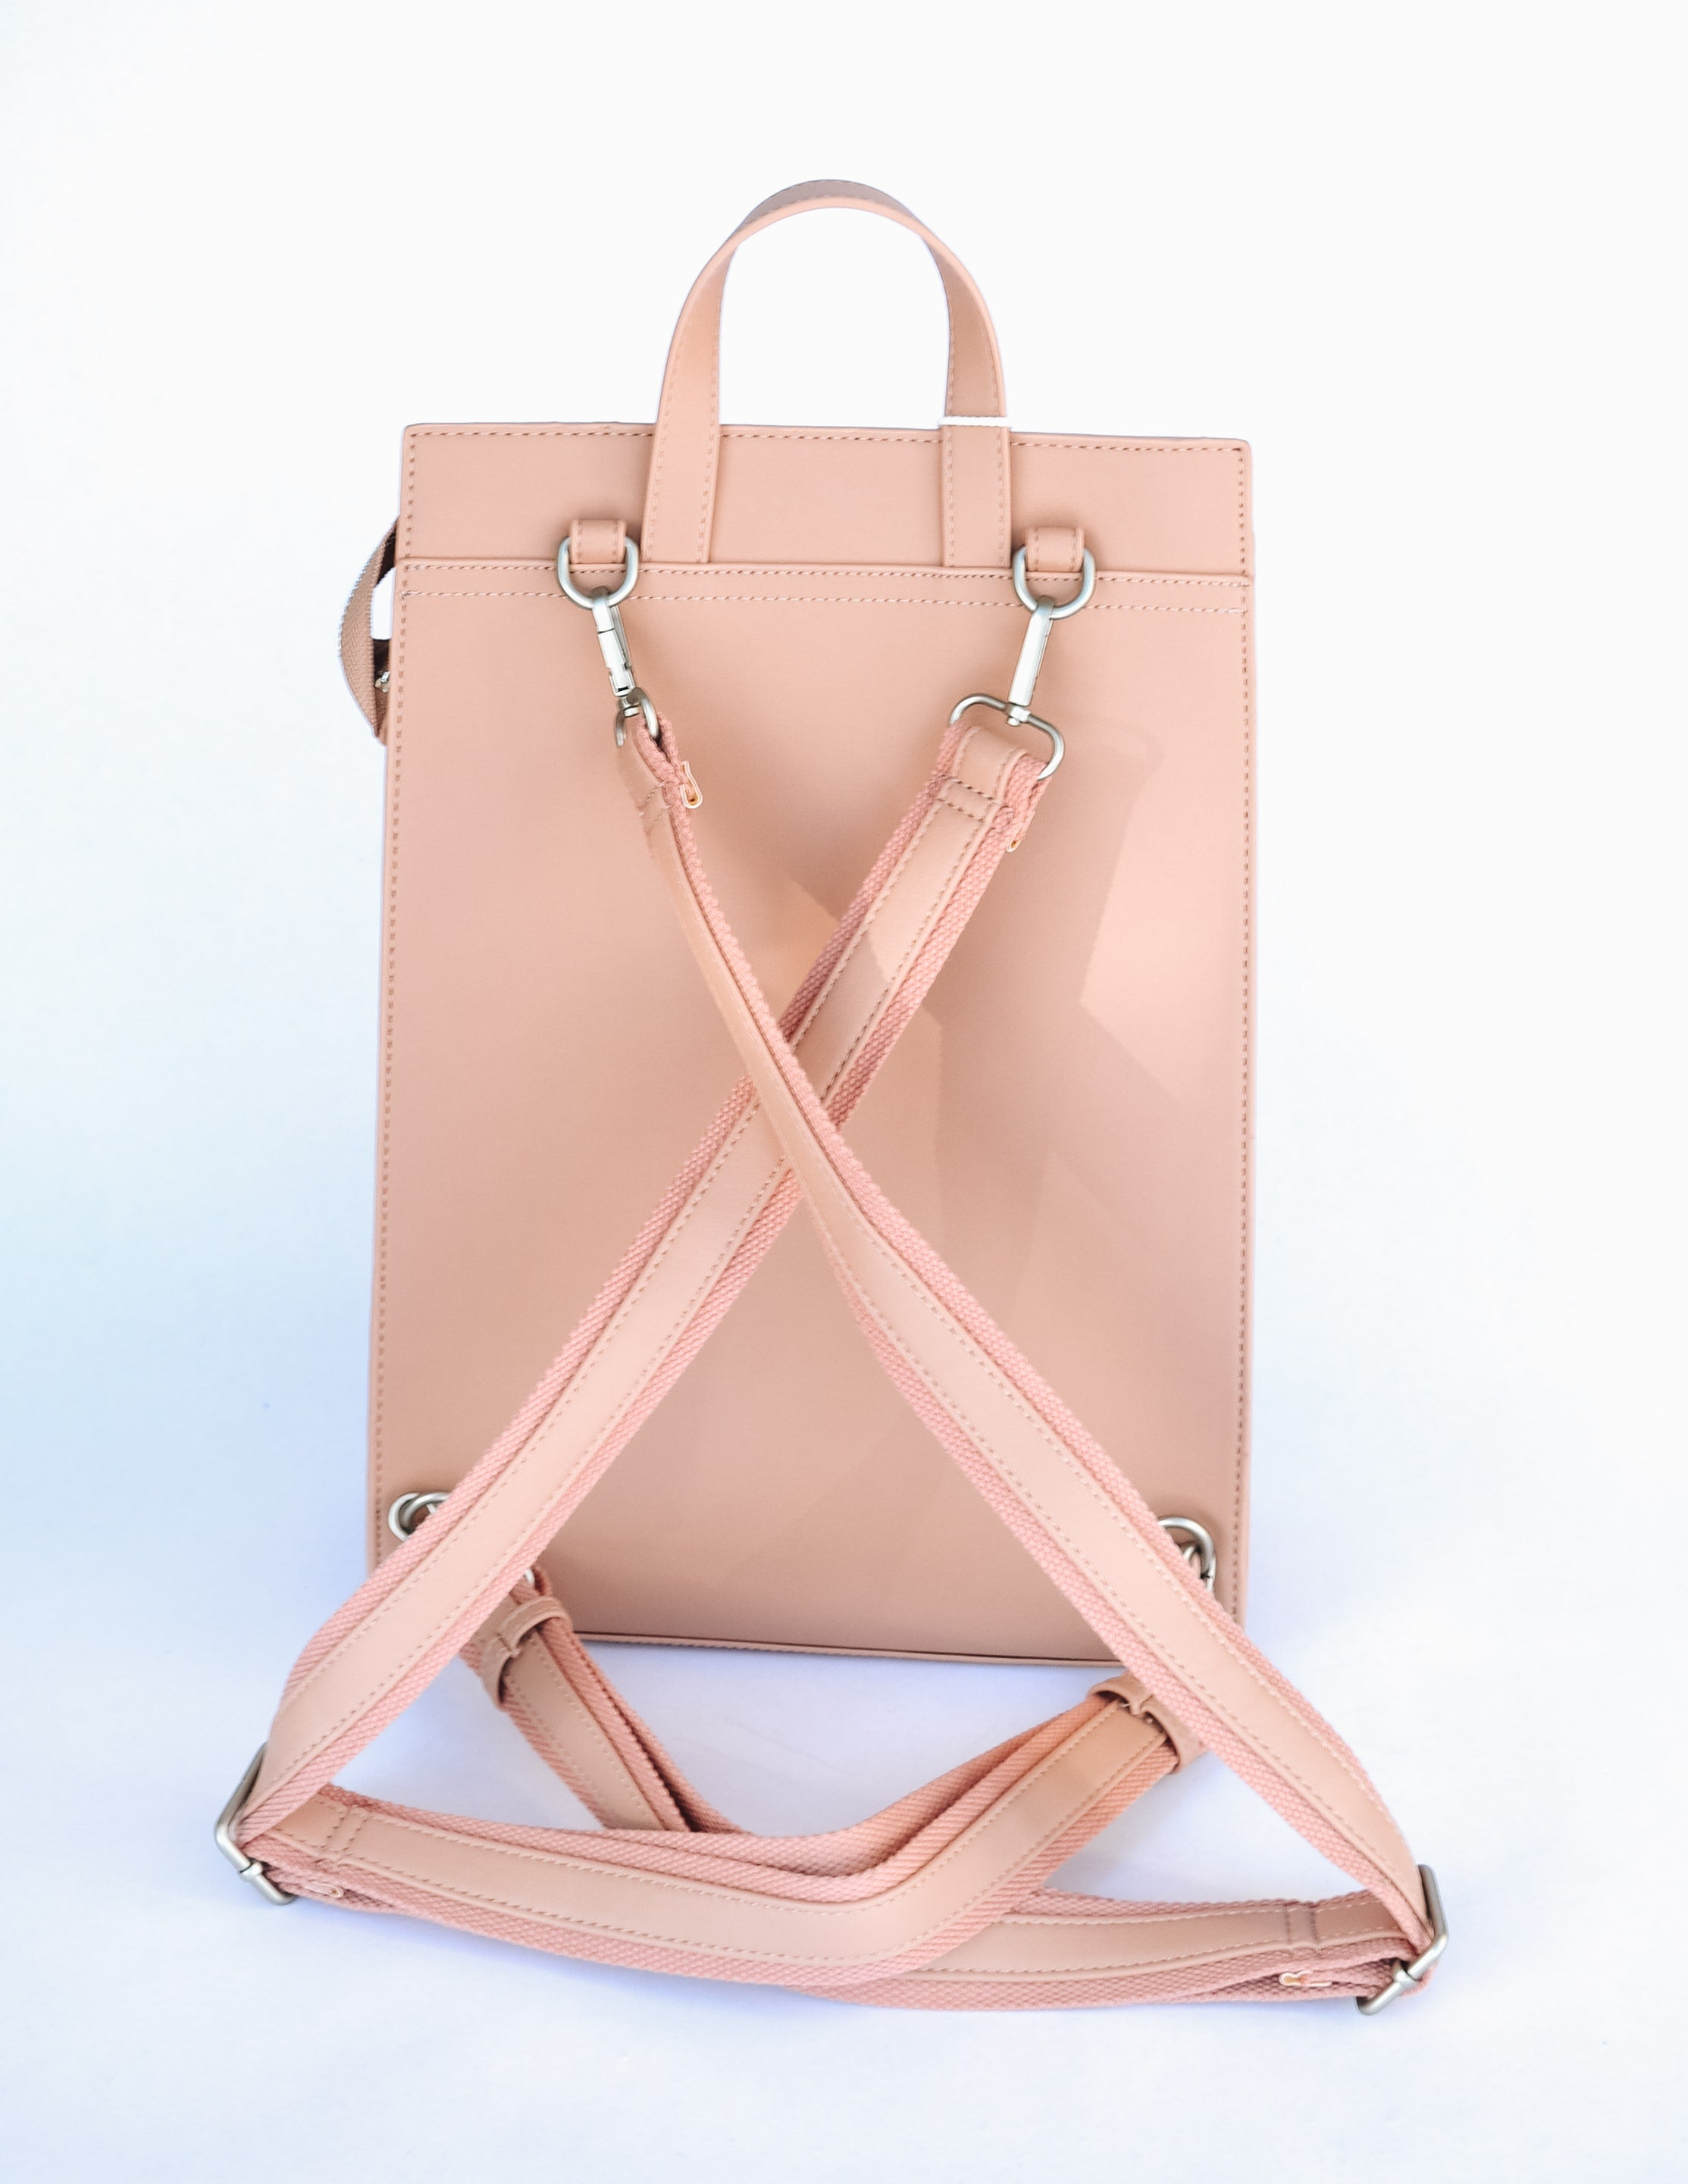 Apricot carrie backpack showing the back interchangeable straps